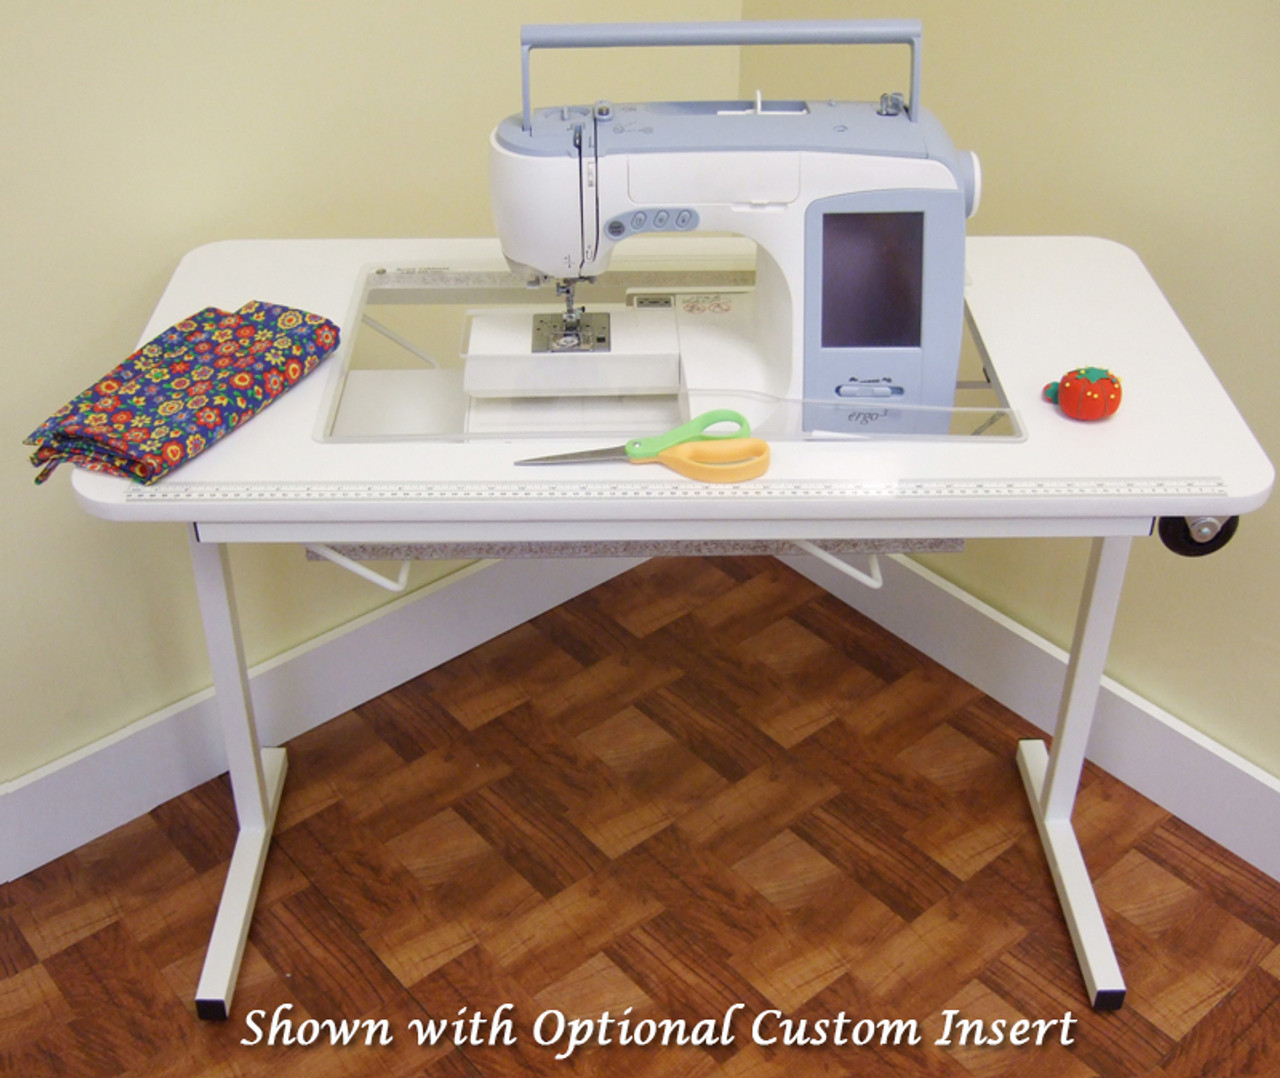 Arrow 98611 Gidget II Folding Sewing Machine And Craft Table $179.00   FREE  SHIPPING!